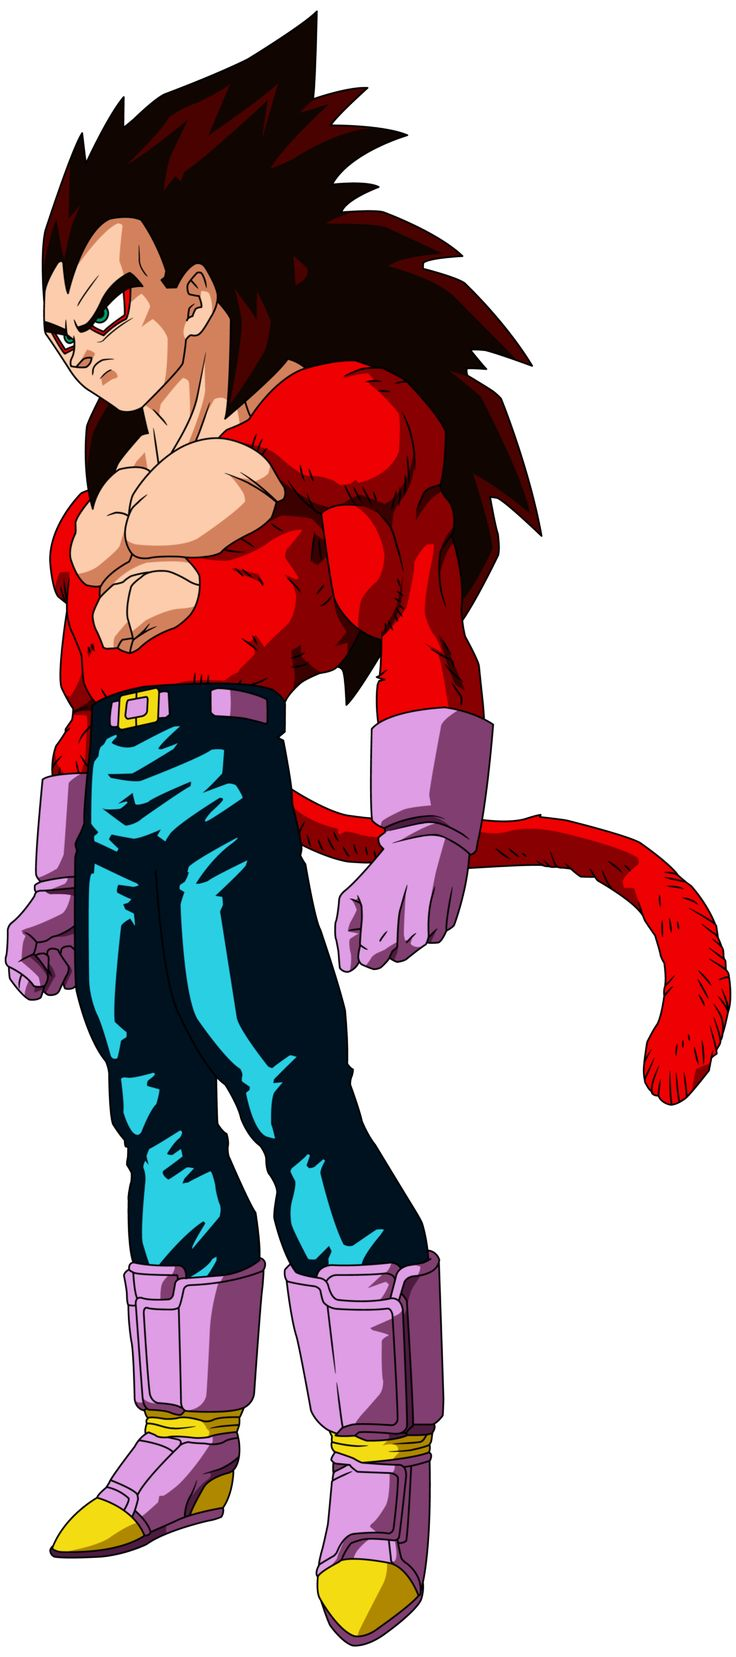 Vegeta ssj 4 by on deviantart - Goku vs vegeta super saiyan 5 ...